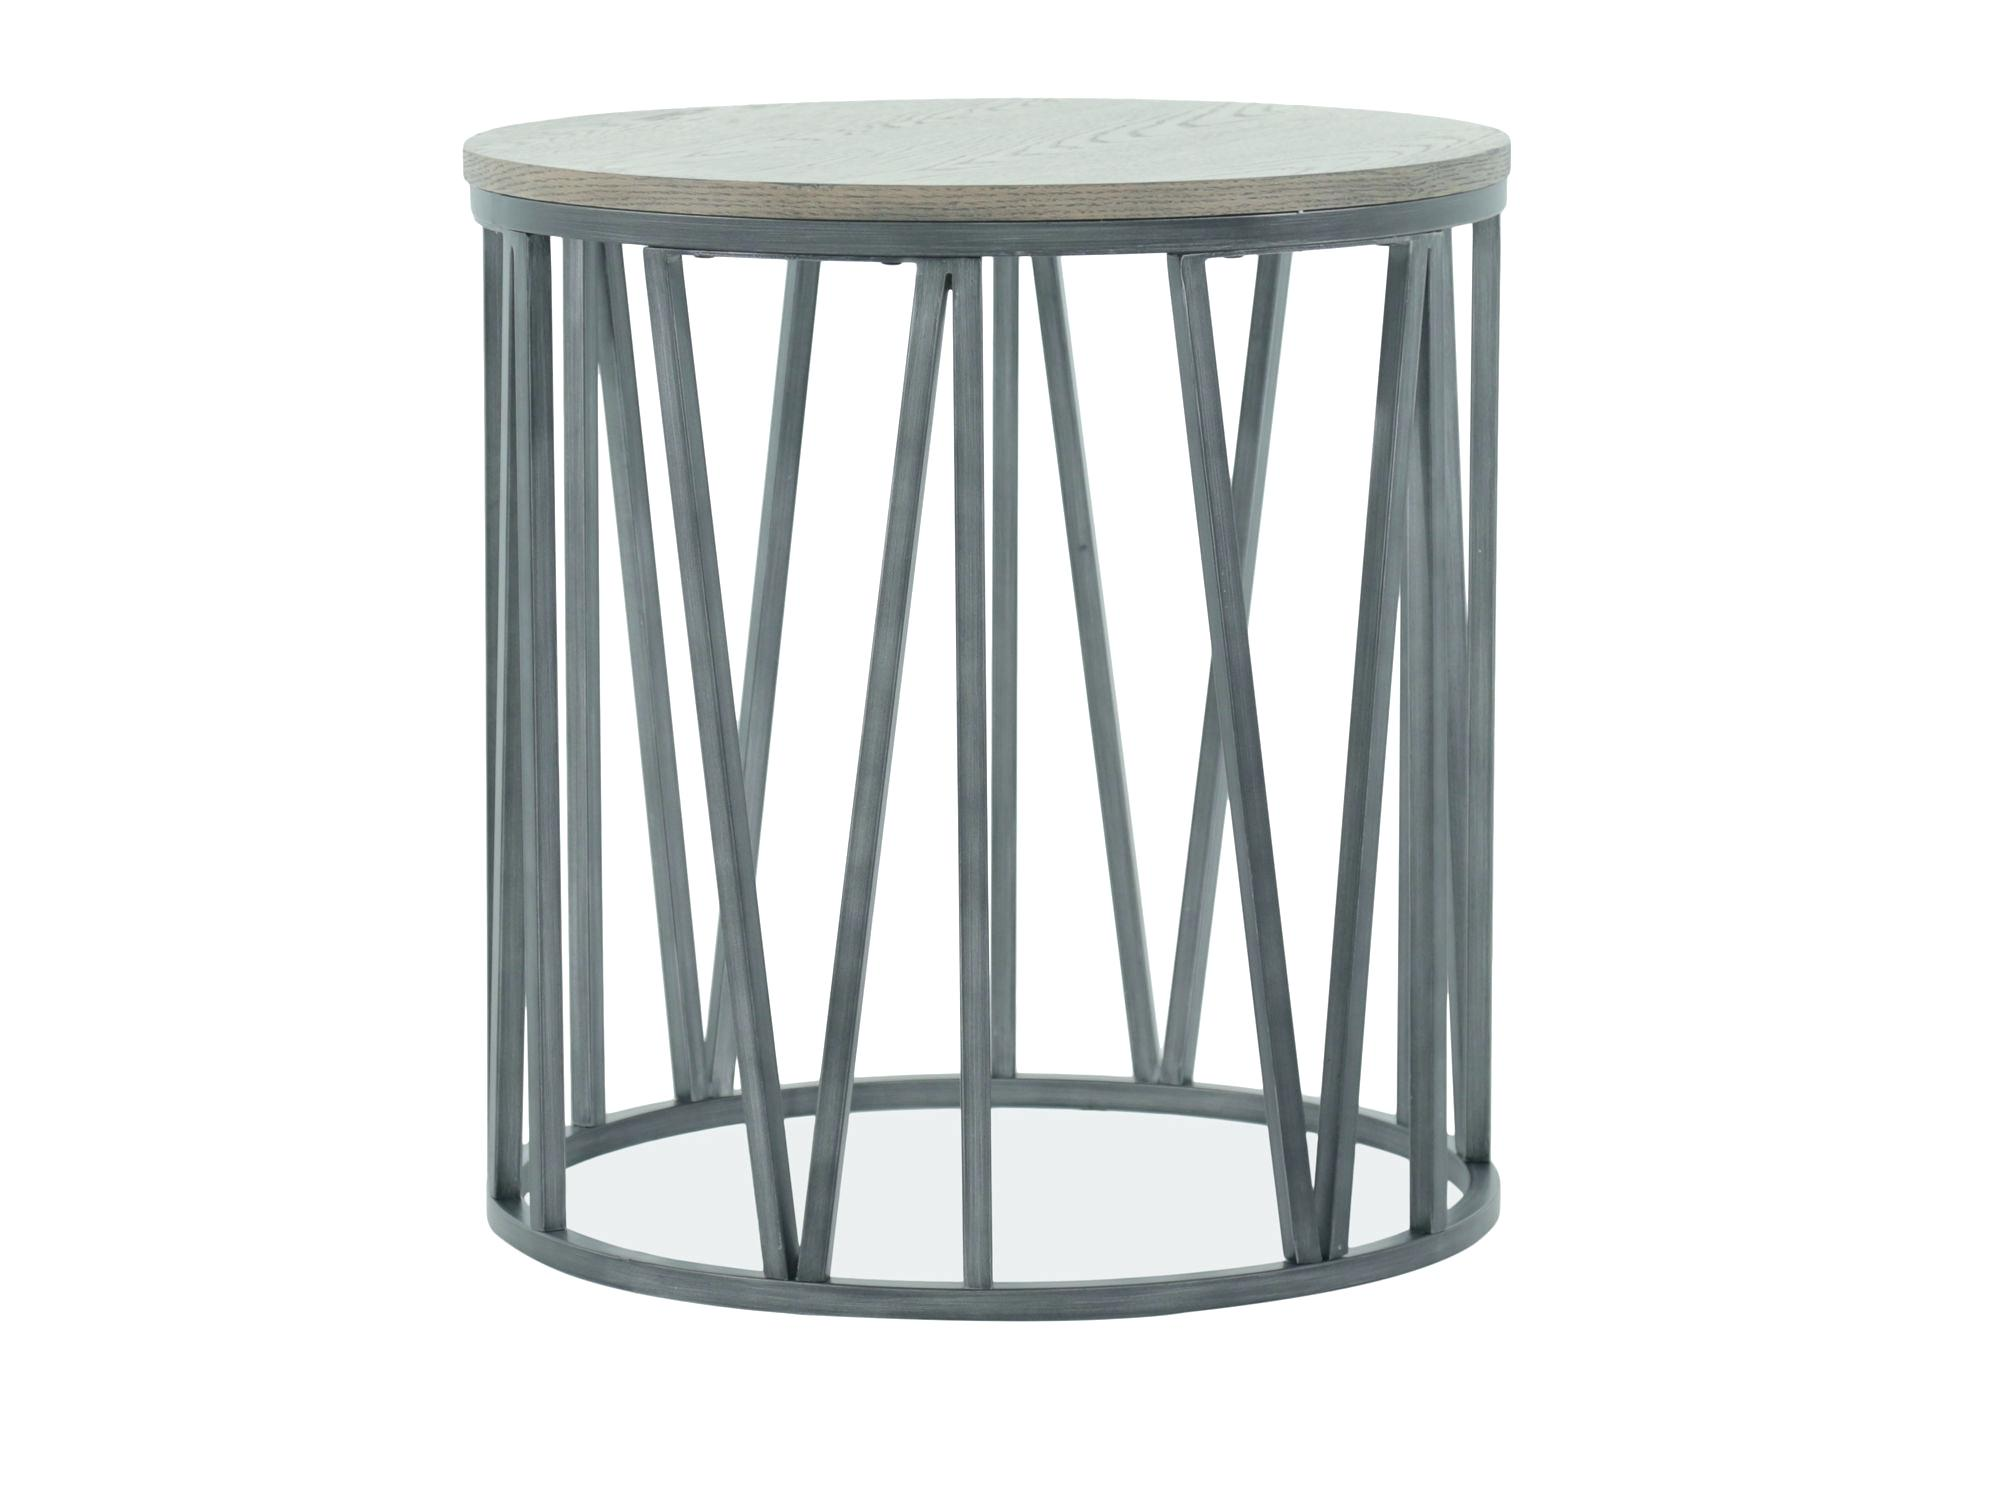 metal drum coffee table hammered side stylish end how rain accent freedom base casual gray brothers furniture kitchen engaging round full size throne seat top grey placemats